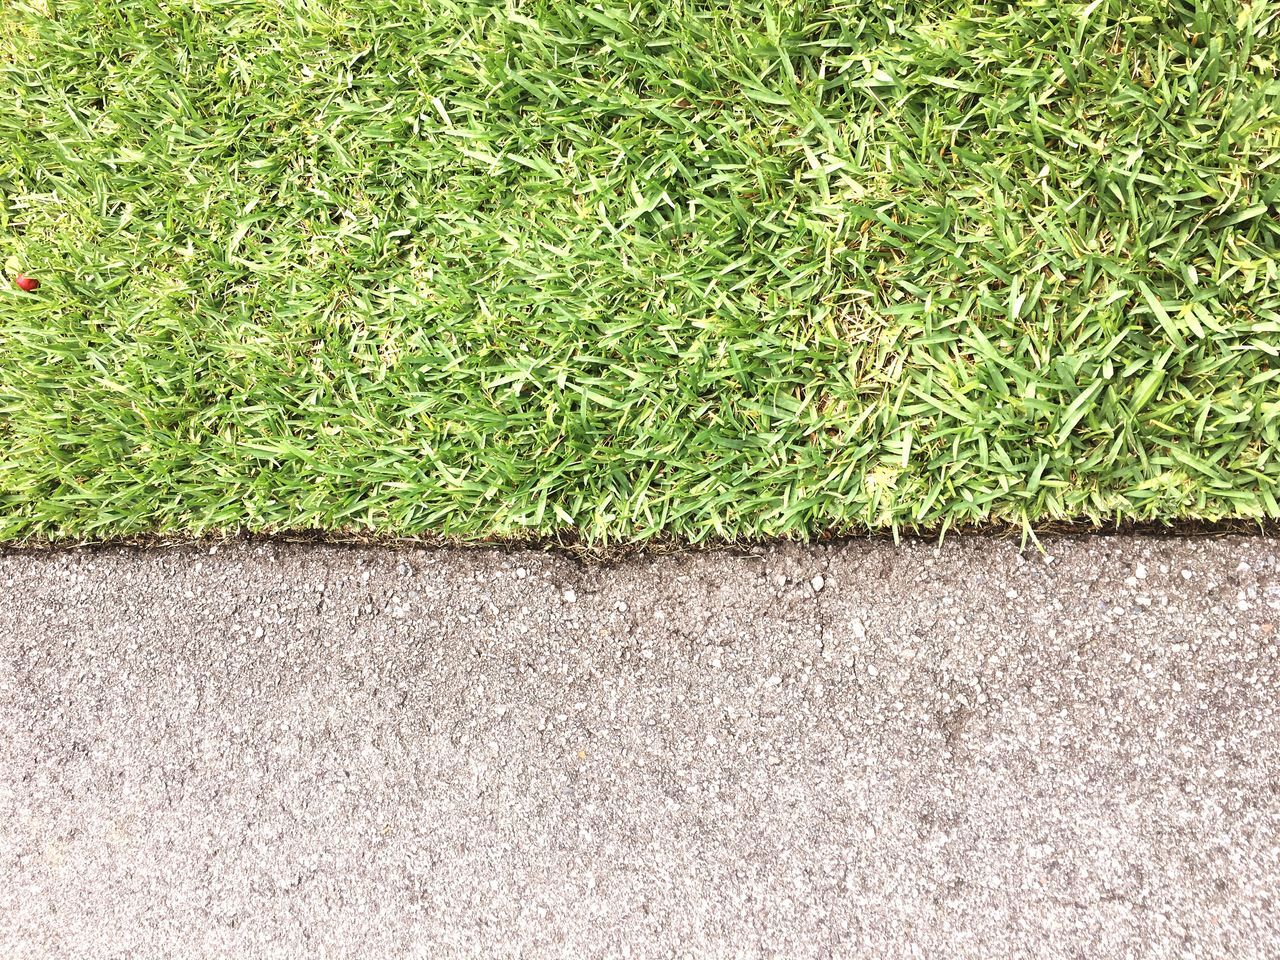 grass, green color, no people, plant, day, outdoors, growth, nature, close-up